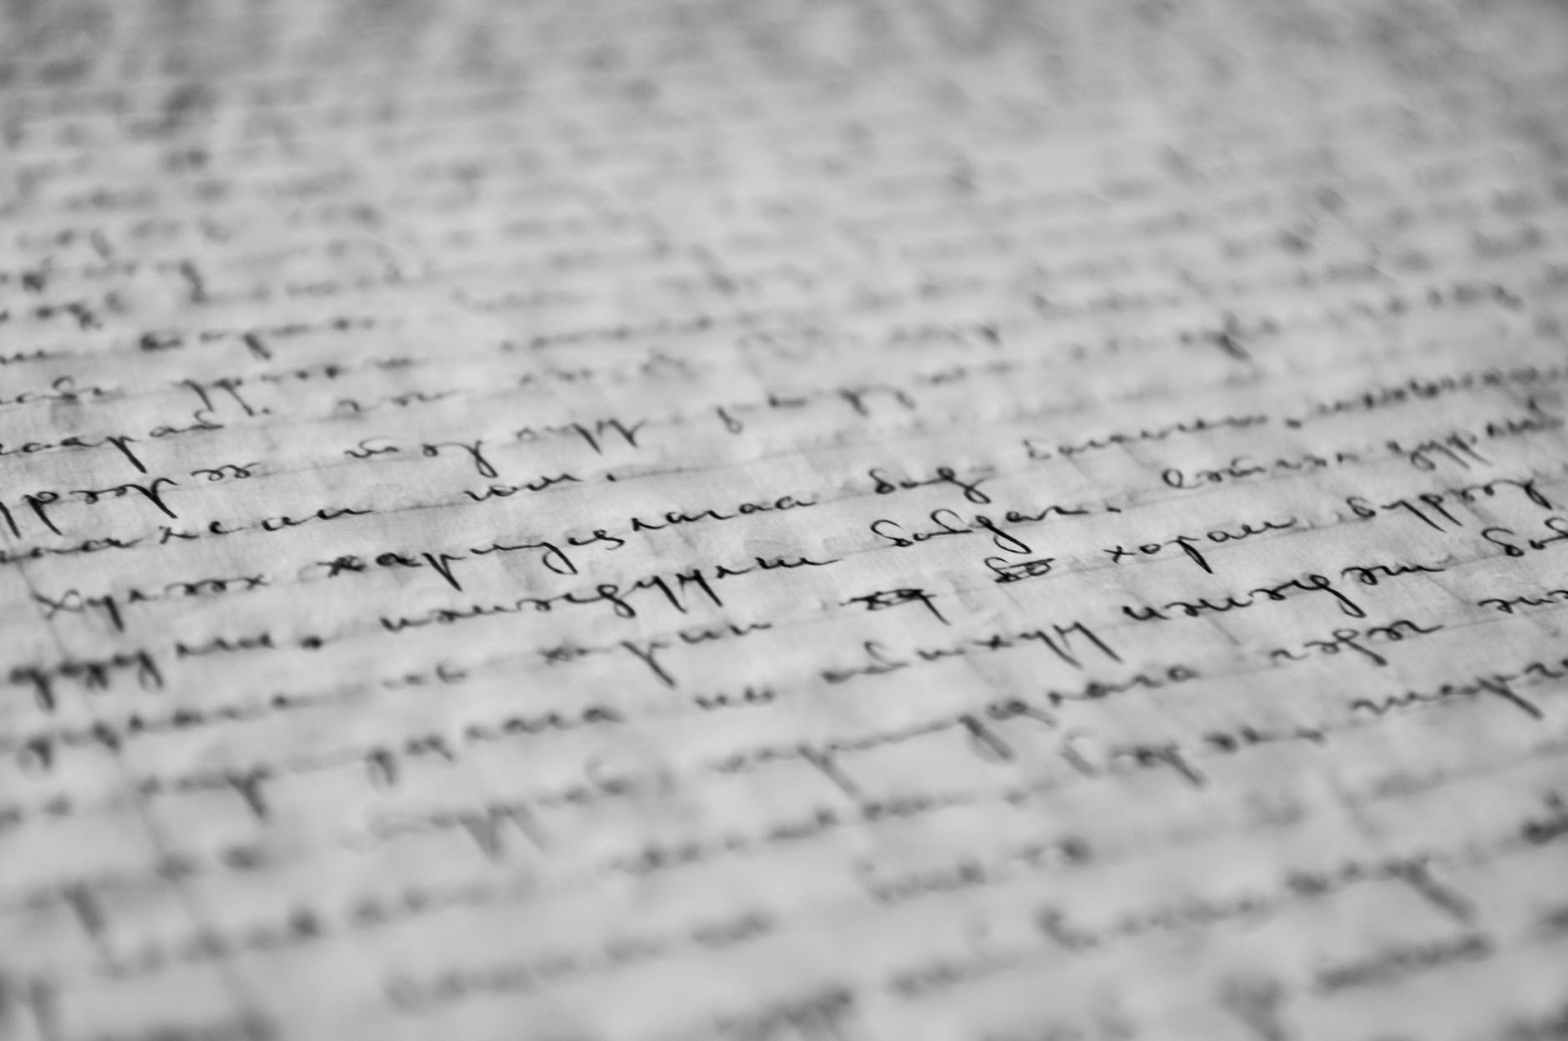 Image description: handwritten words on a page, out of focus.